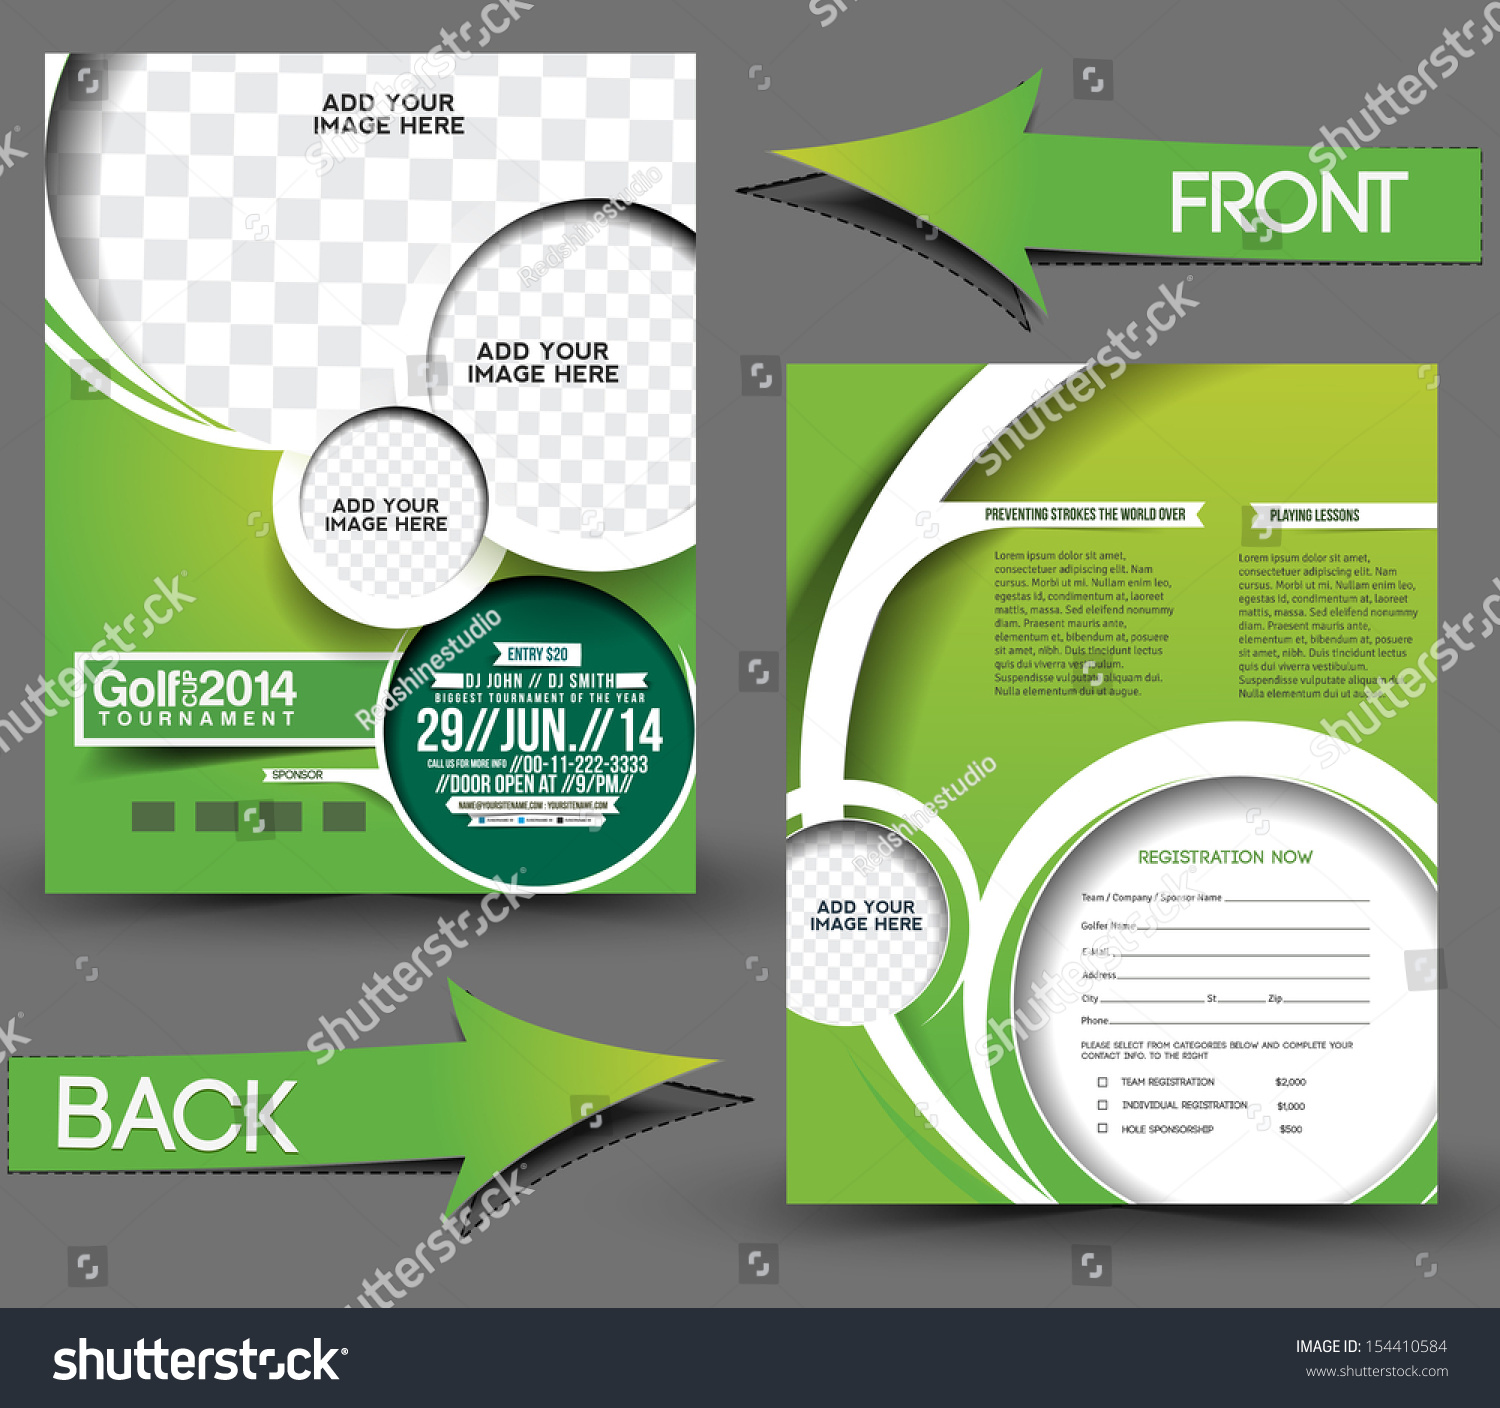 Royalty Free Golf Tournament Front Back Flyer 154410584 Stock